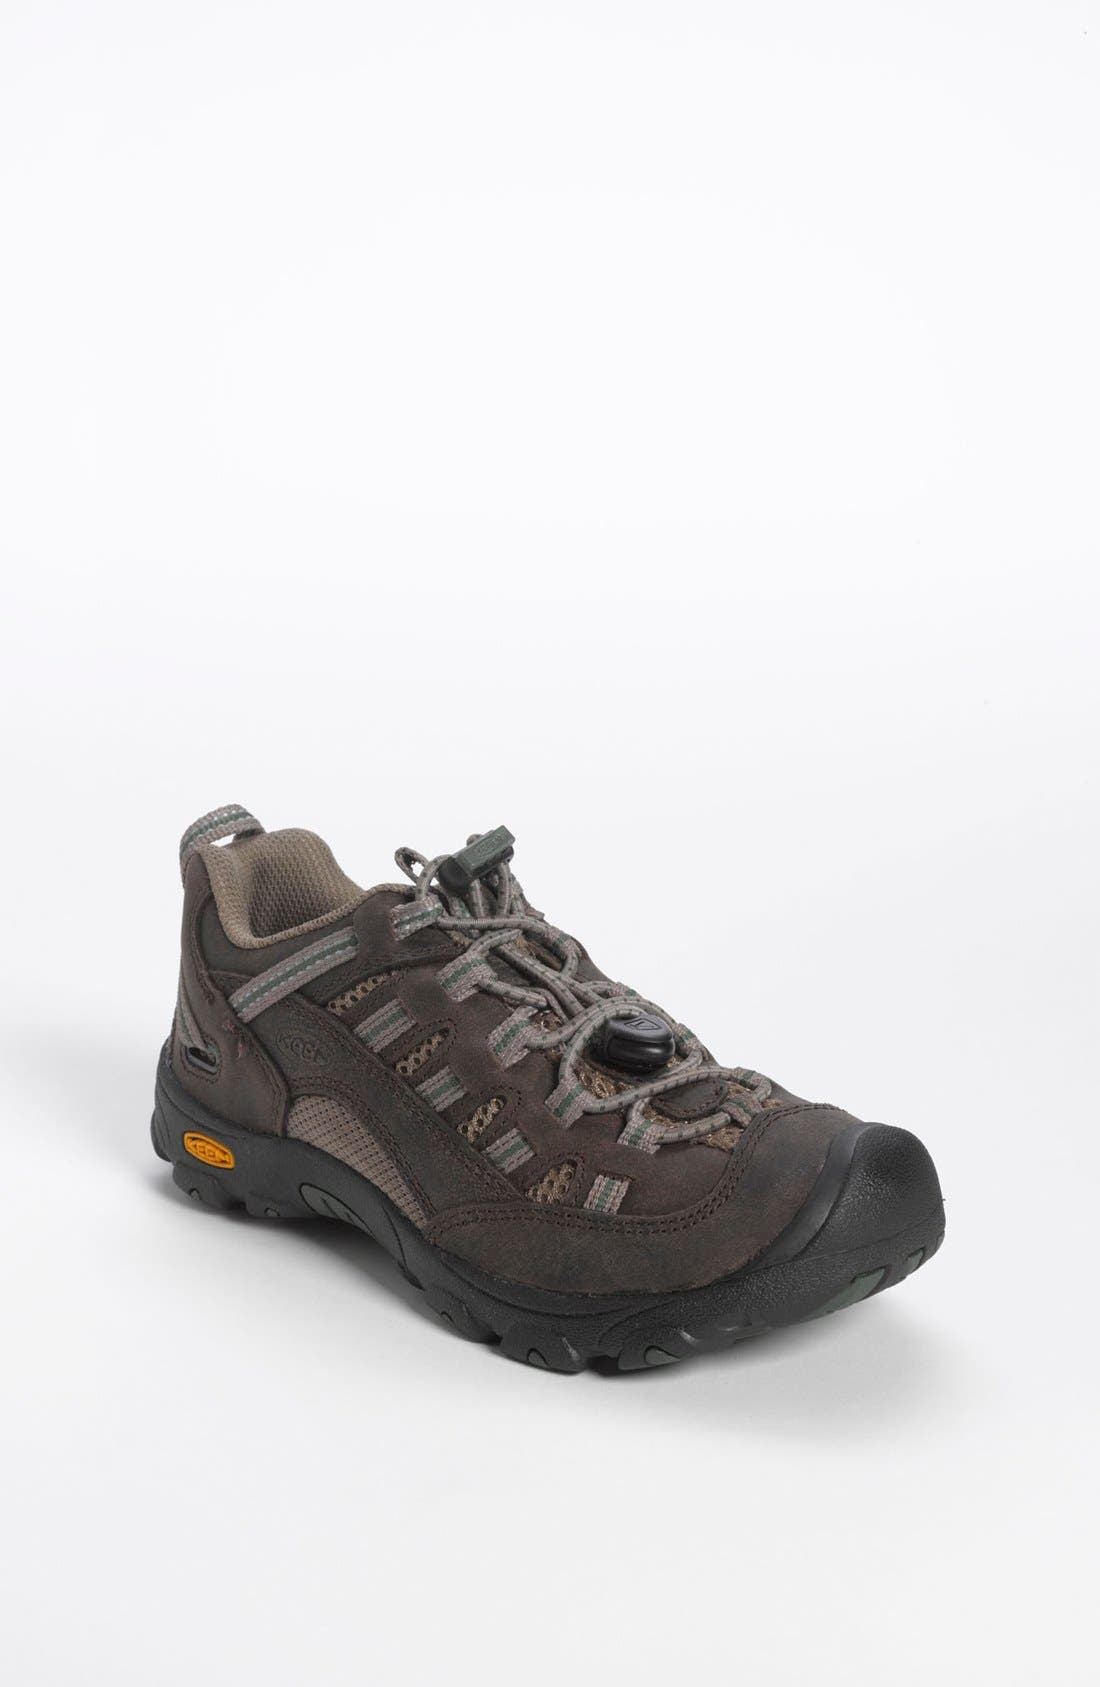 Main Image - Keen 'Alamosa' Sneaker (Toddler, Little Kid & Big Kid)